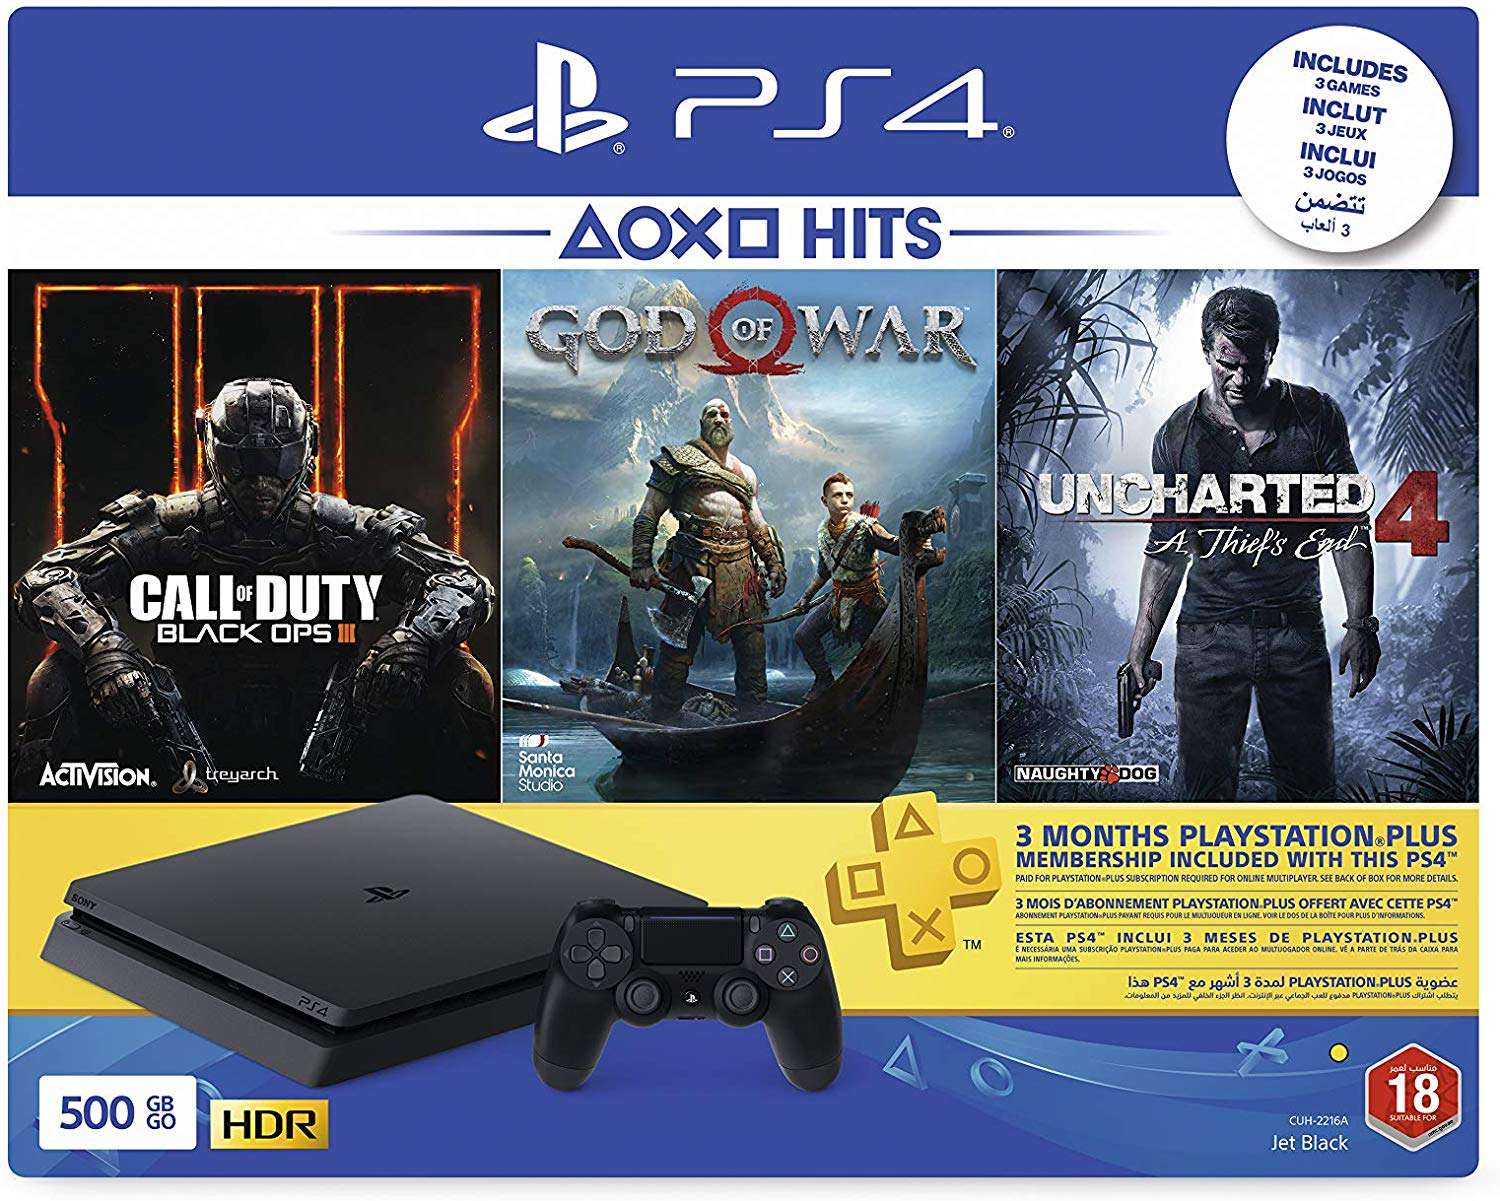 Sony Playstation 4 Slim 500gb Console Black With 3 Month Psn